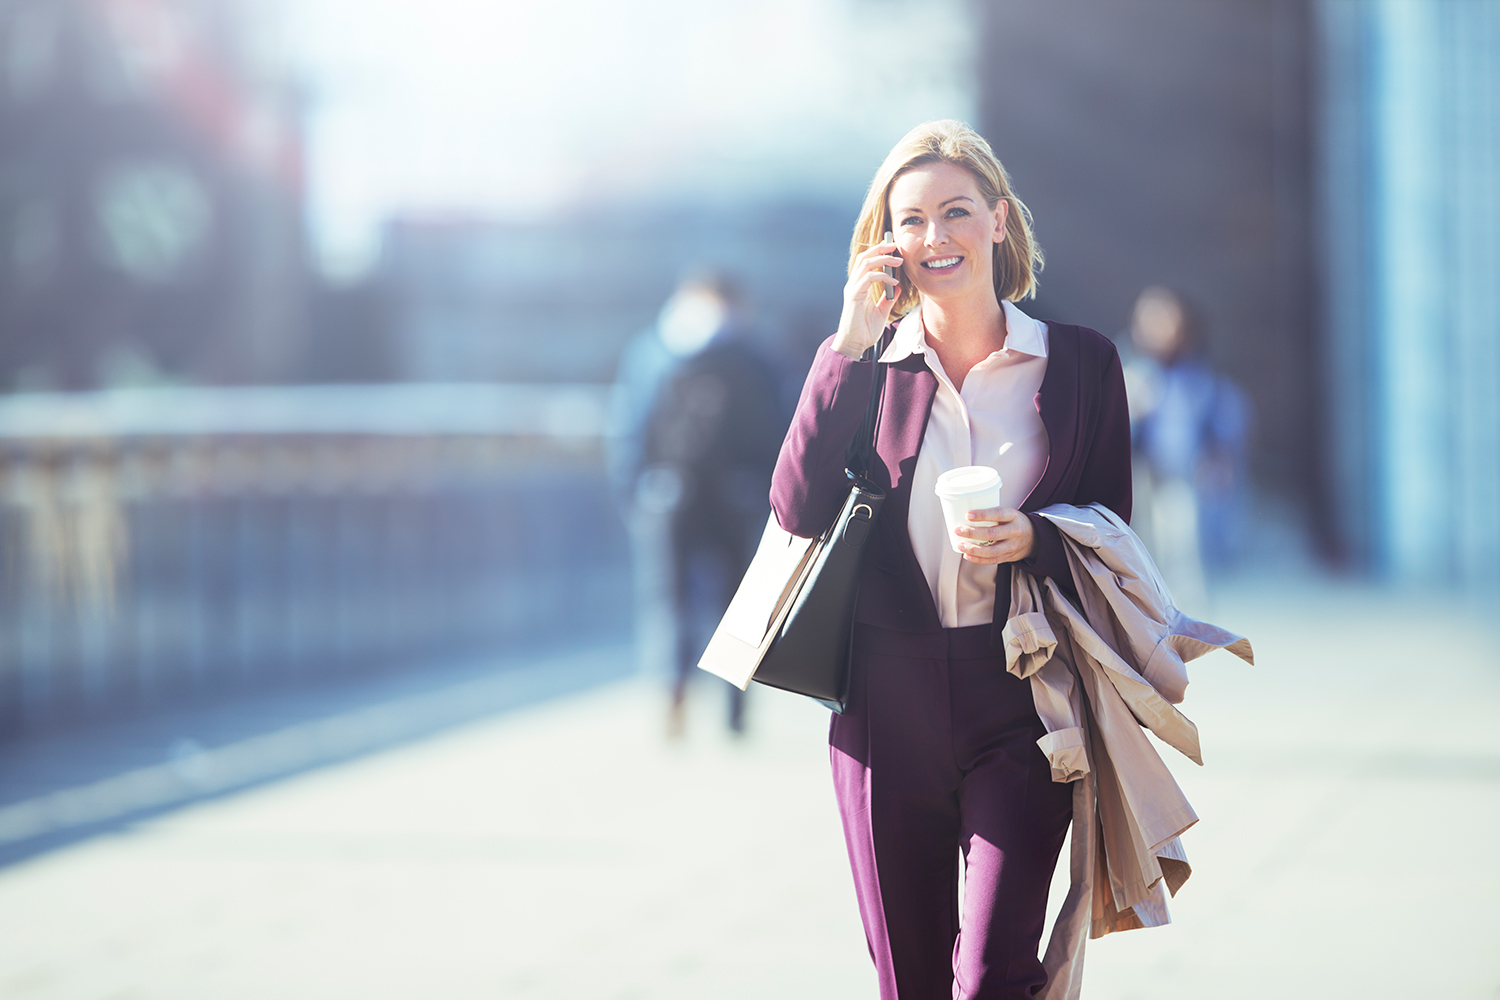 Woman Smiling While Walking Down the Street